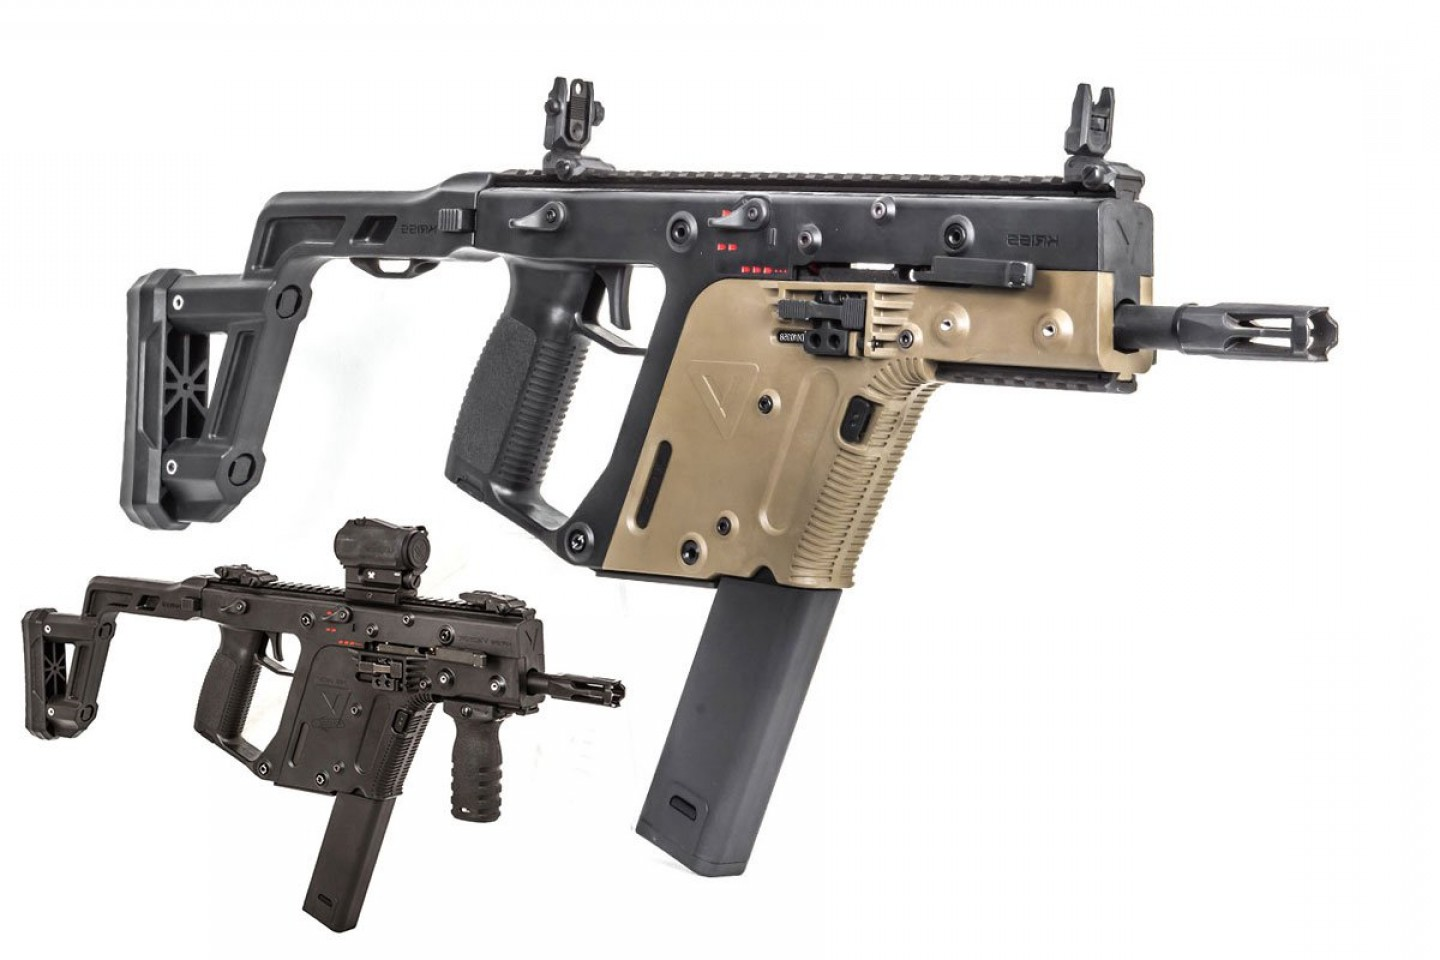 Vector Rifle And Boots: Krytac Kriss Vector Aeg Airsoft Smg Choose An Option